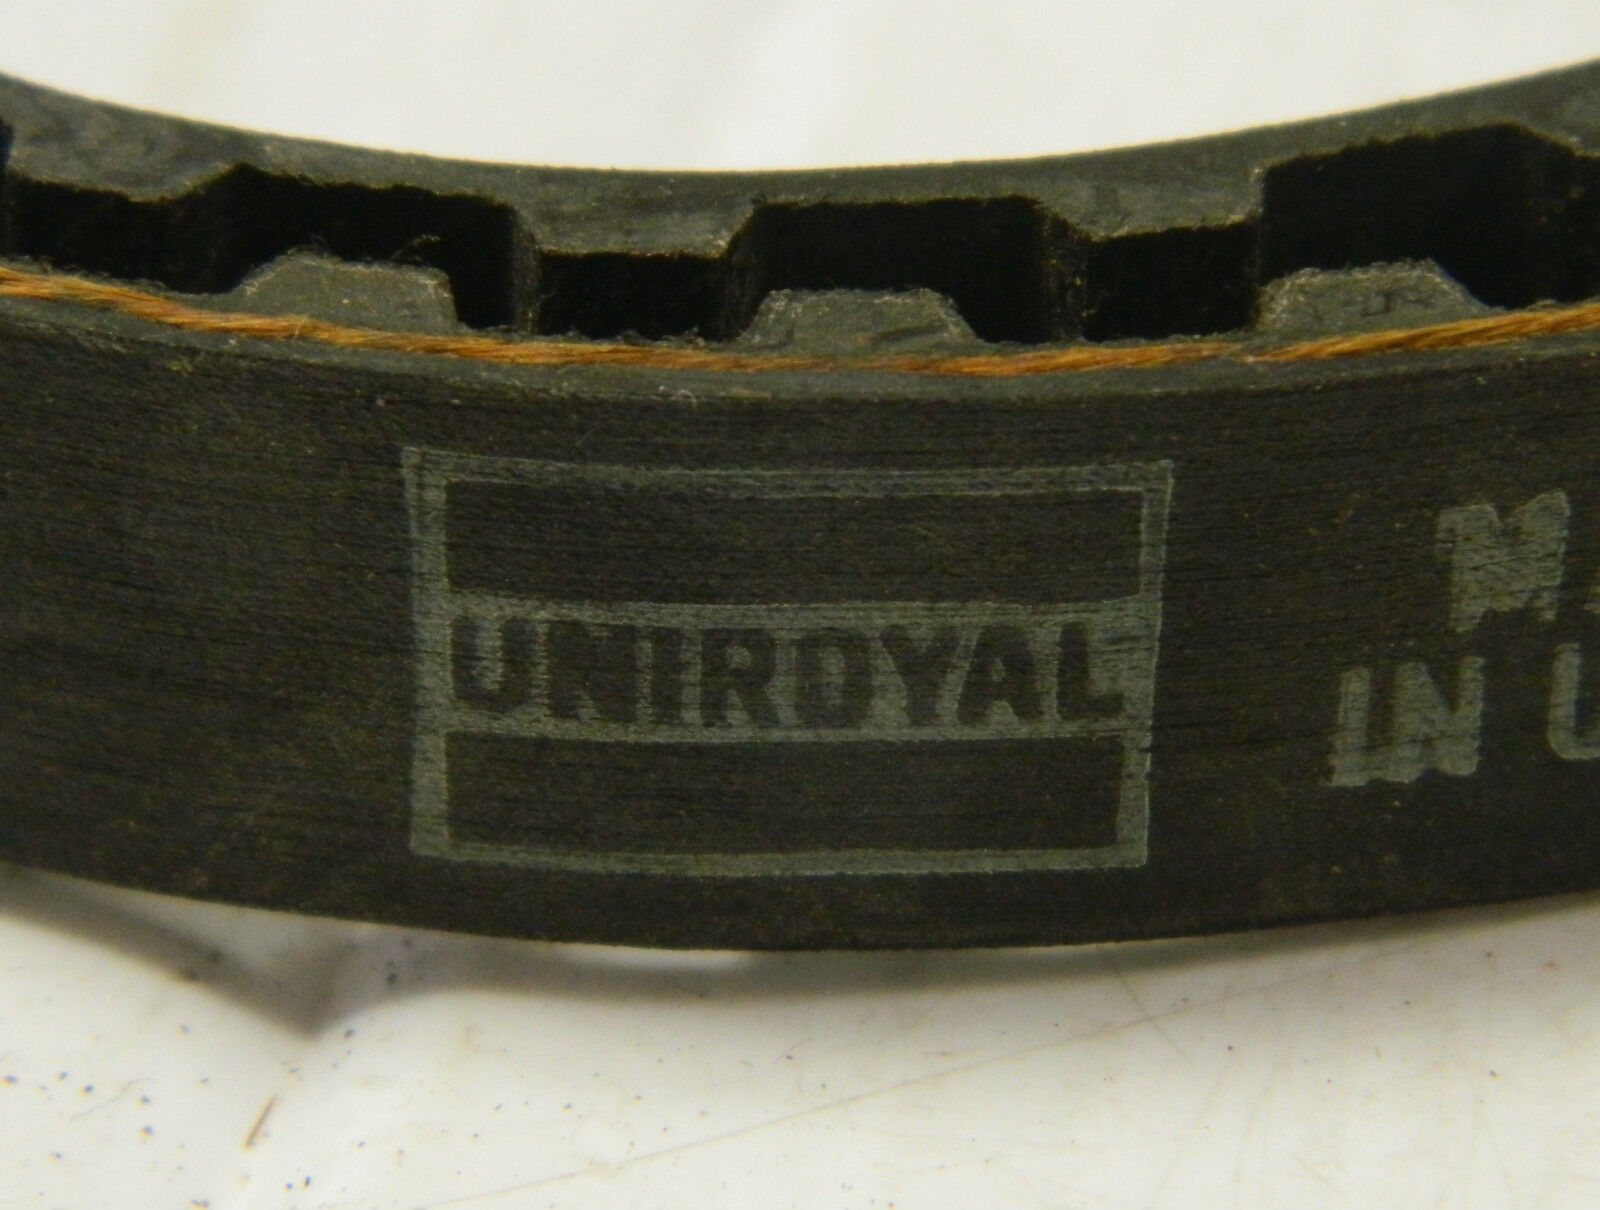 UNIROYAL INDUSTRIAL A30 Replacement Belt